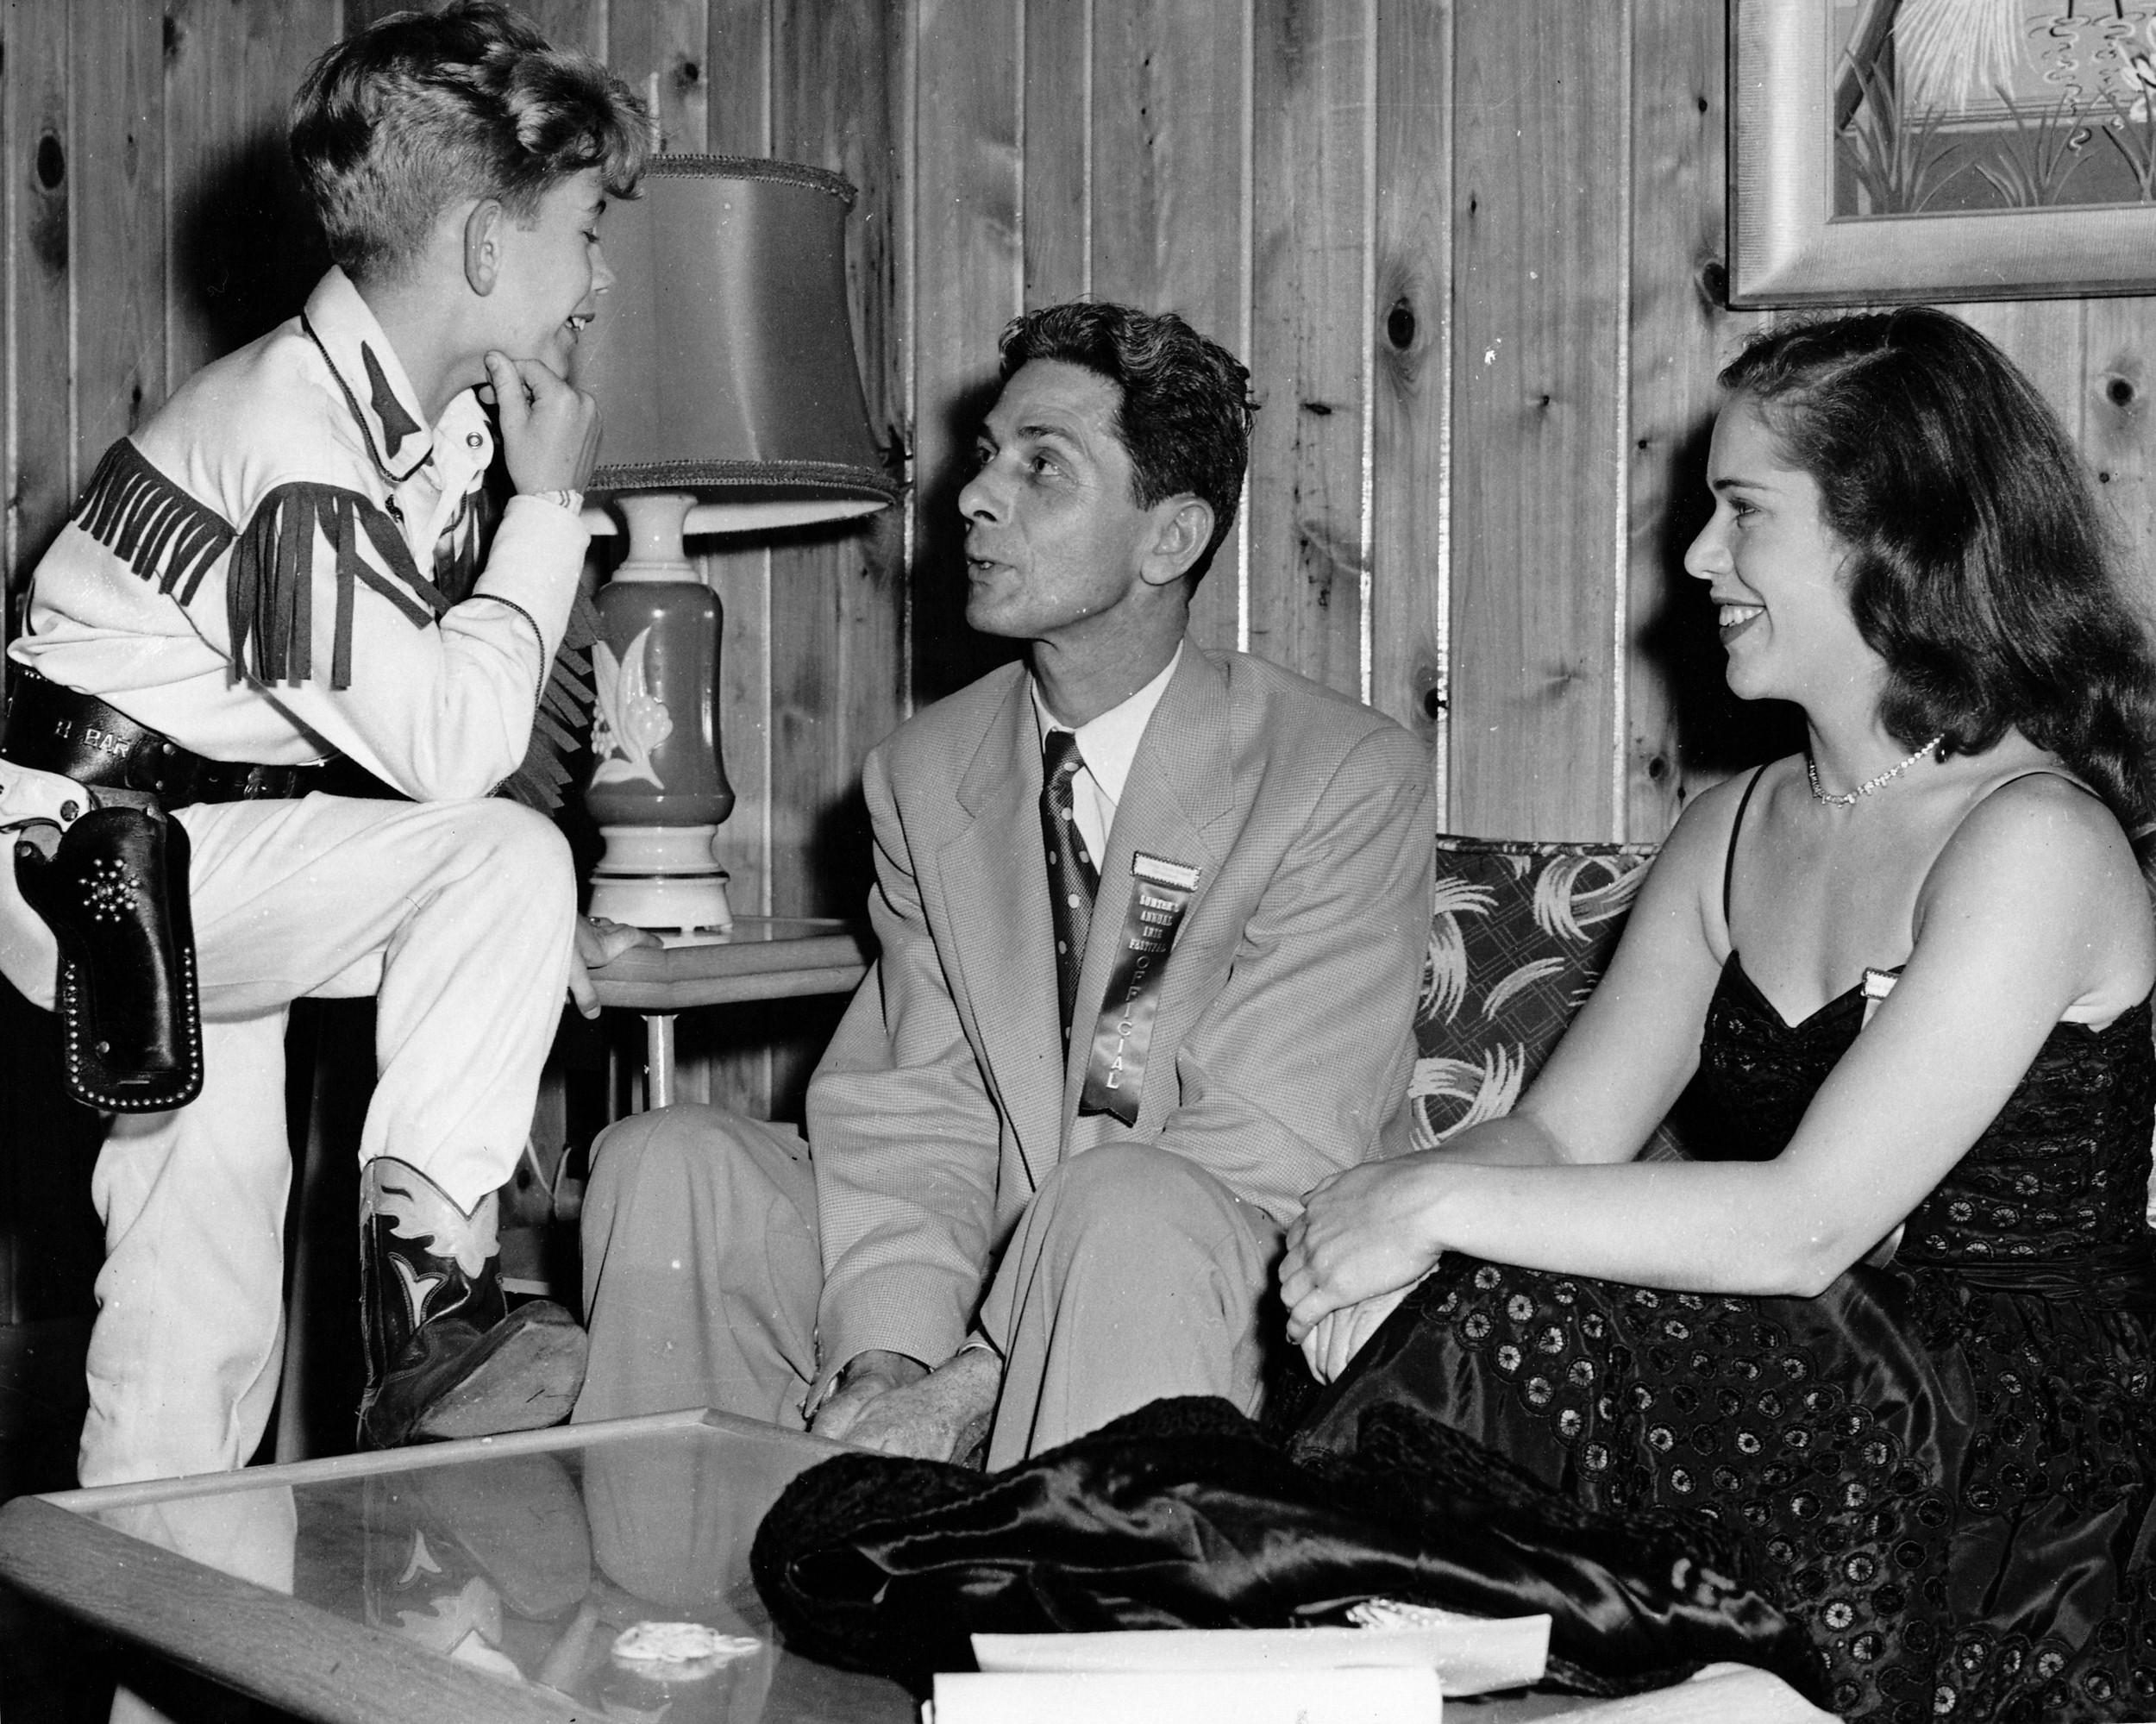 Child star Bobby Benson talks with T. Doug Youngblood and one of the visiting Iris beauties in 1952.